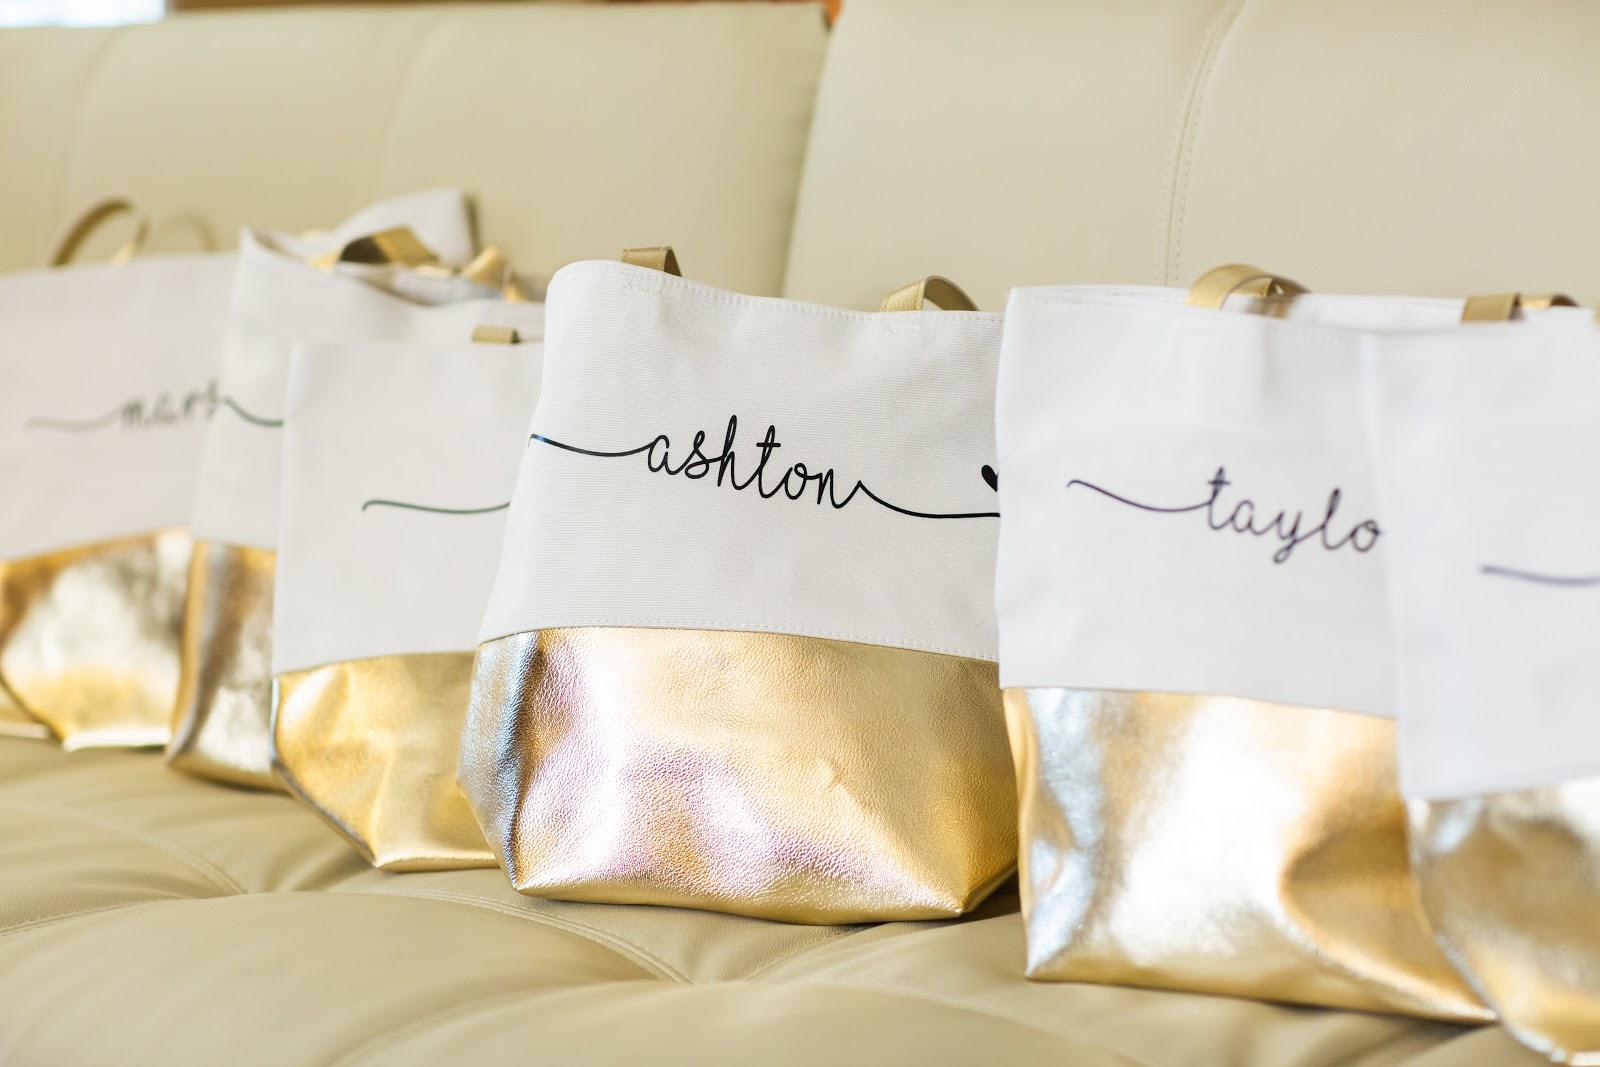 bridesmaid proposal ideas: Monogrammed tote bags on a couch